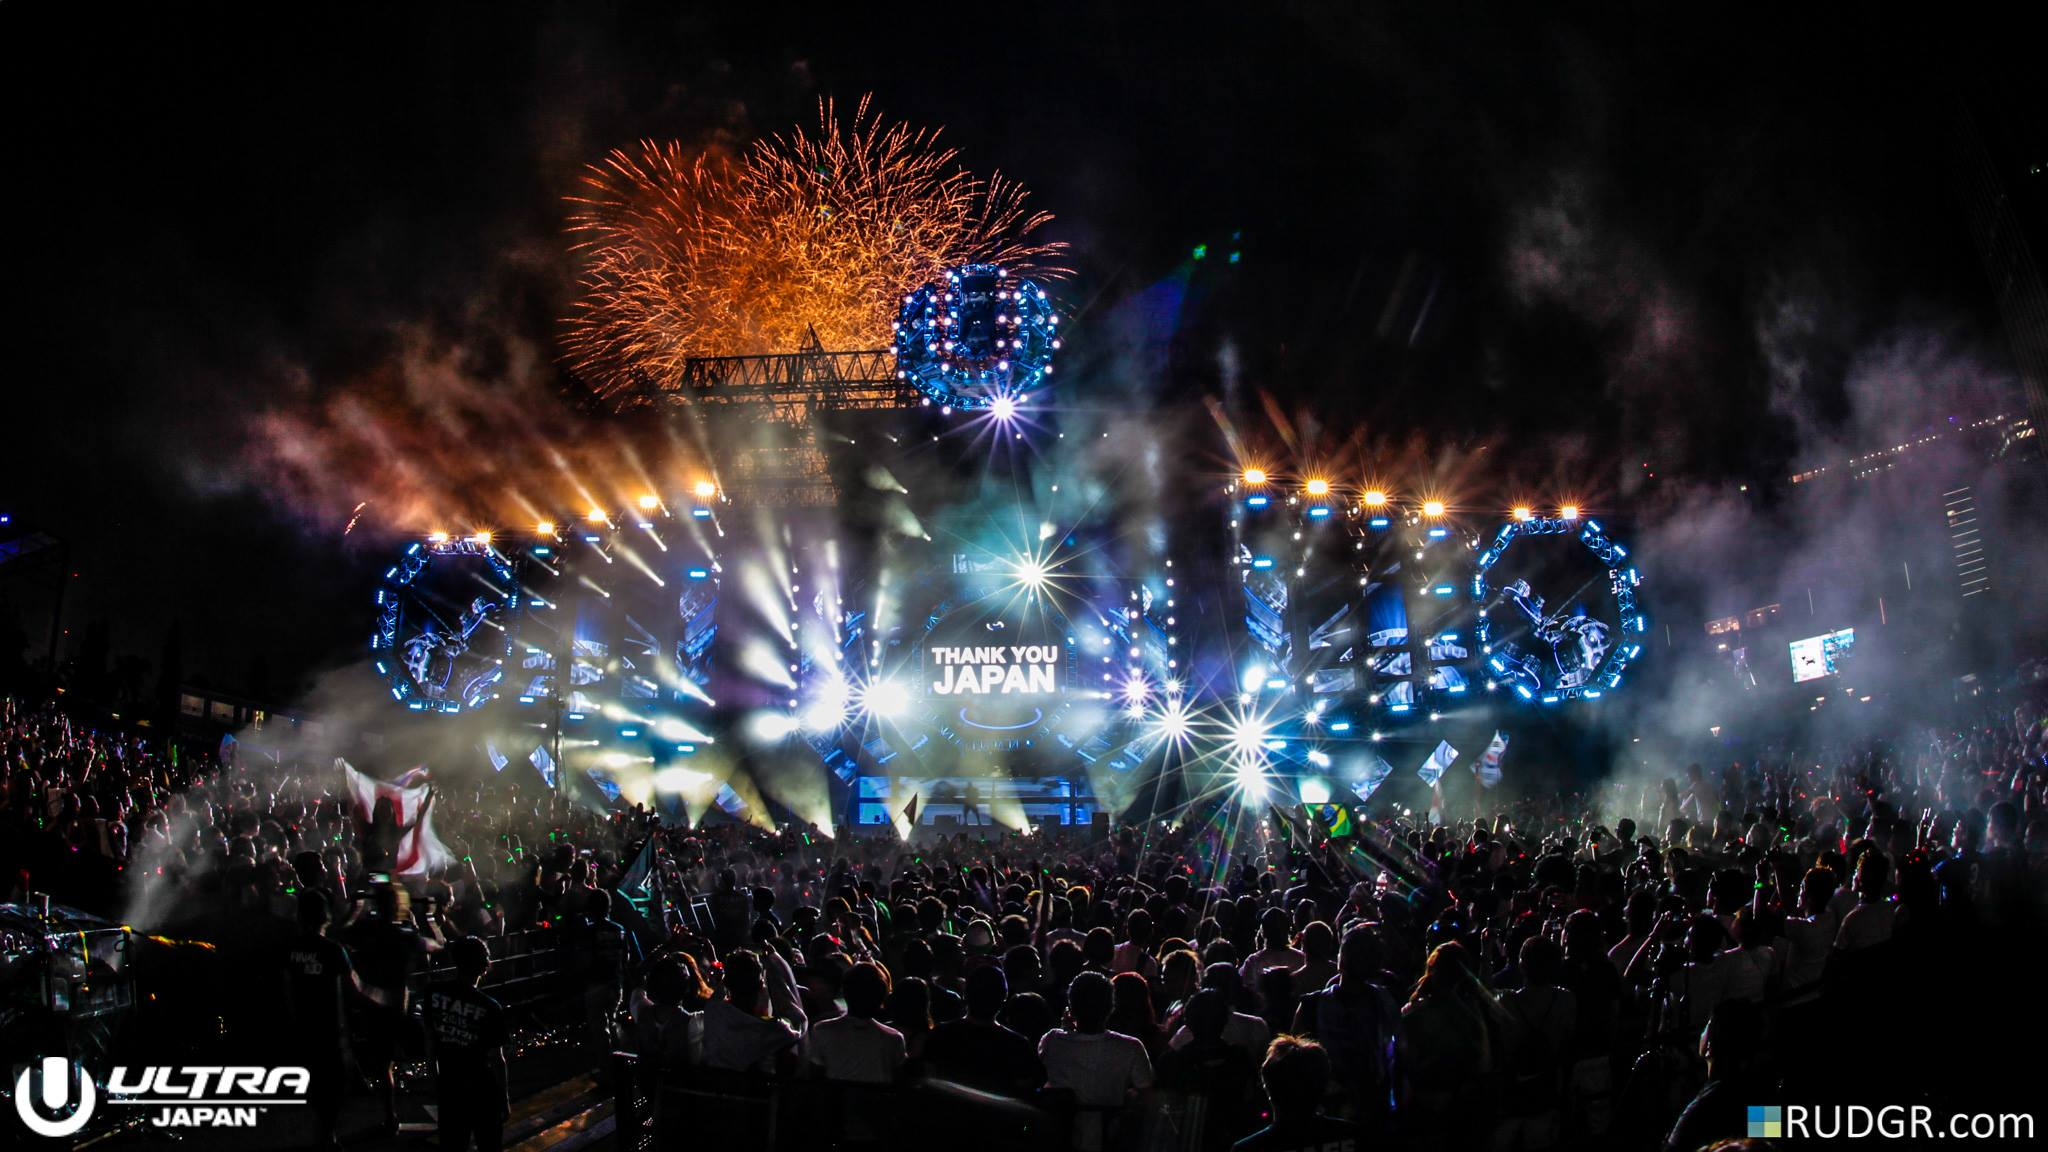 Ultra Asia Releases 6 After-Movies, Adds Another Road To Ultra & Releases Phase 1 Of Ultra Korea